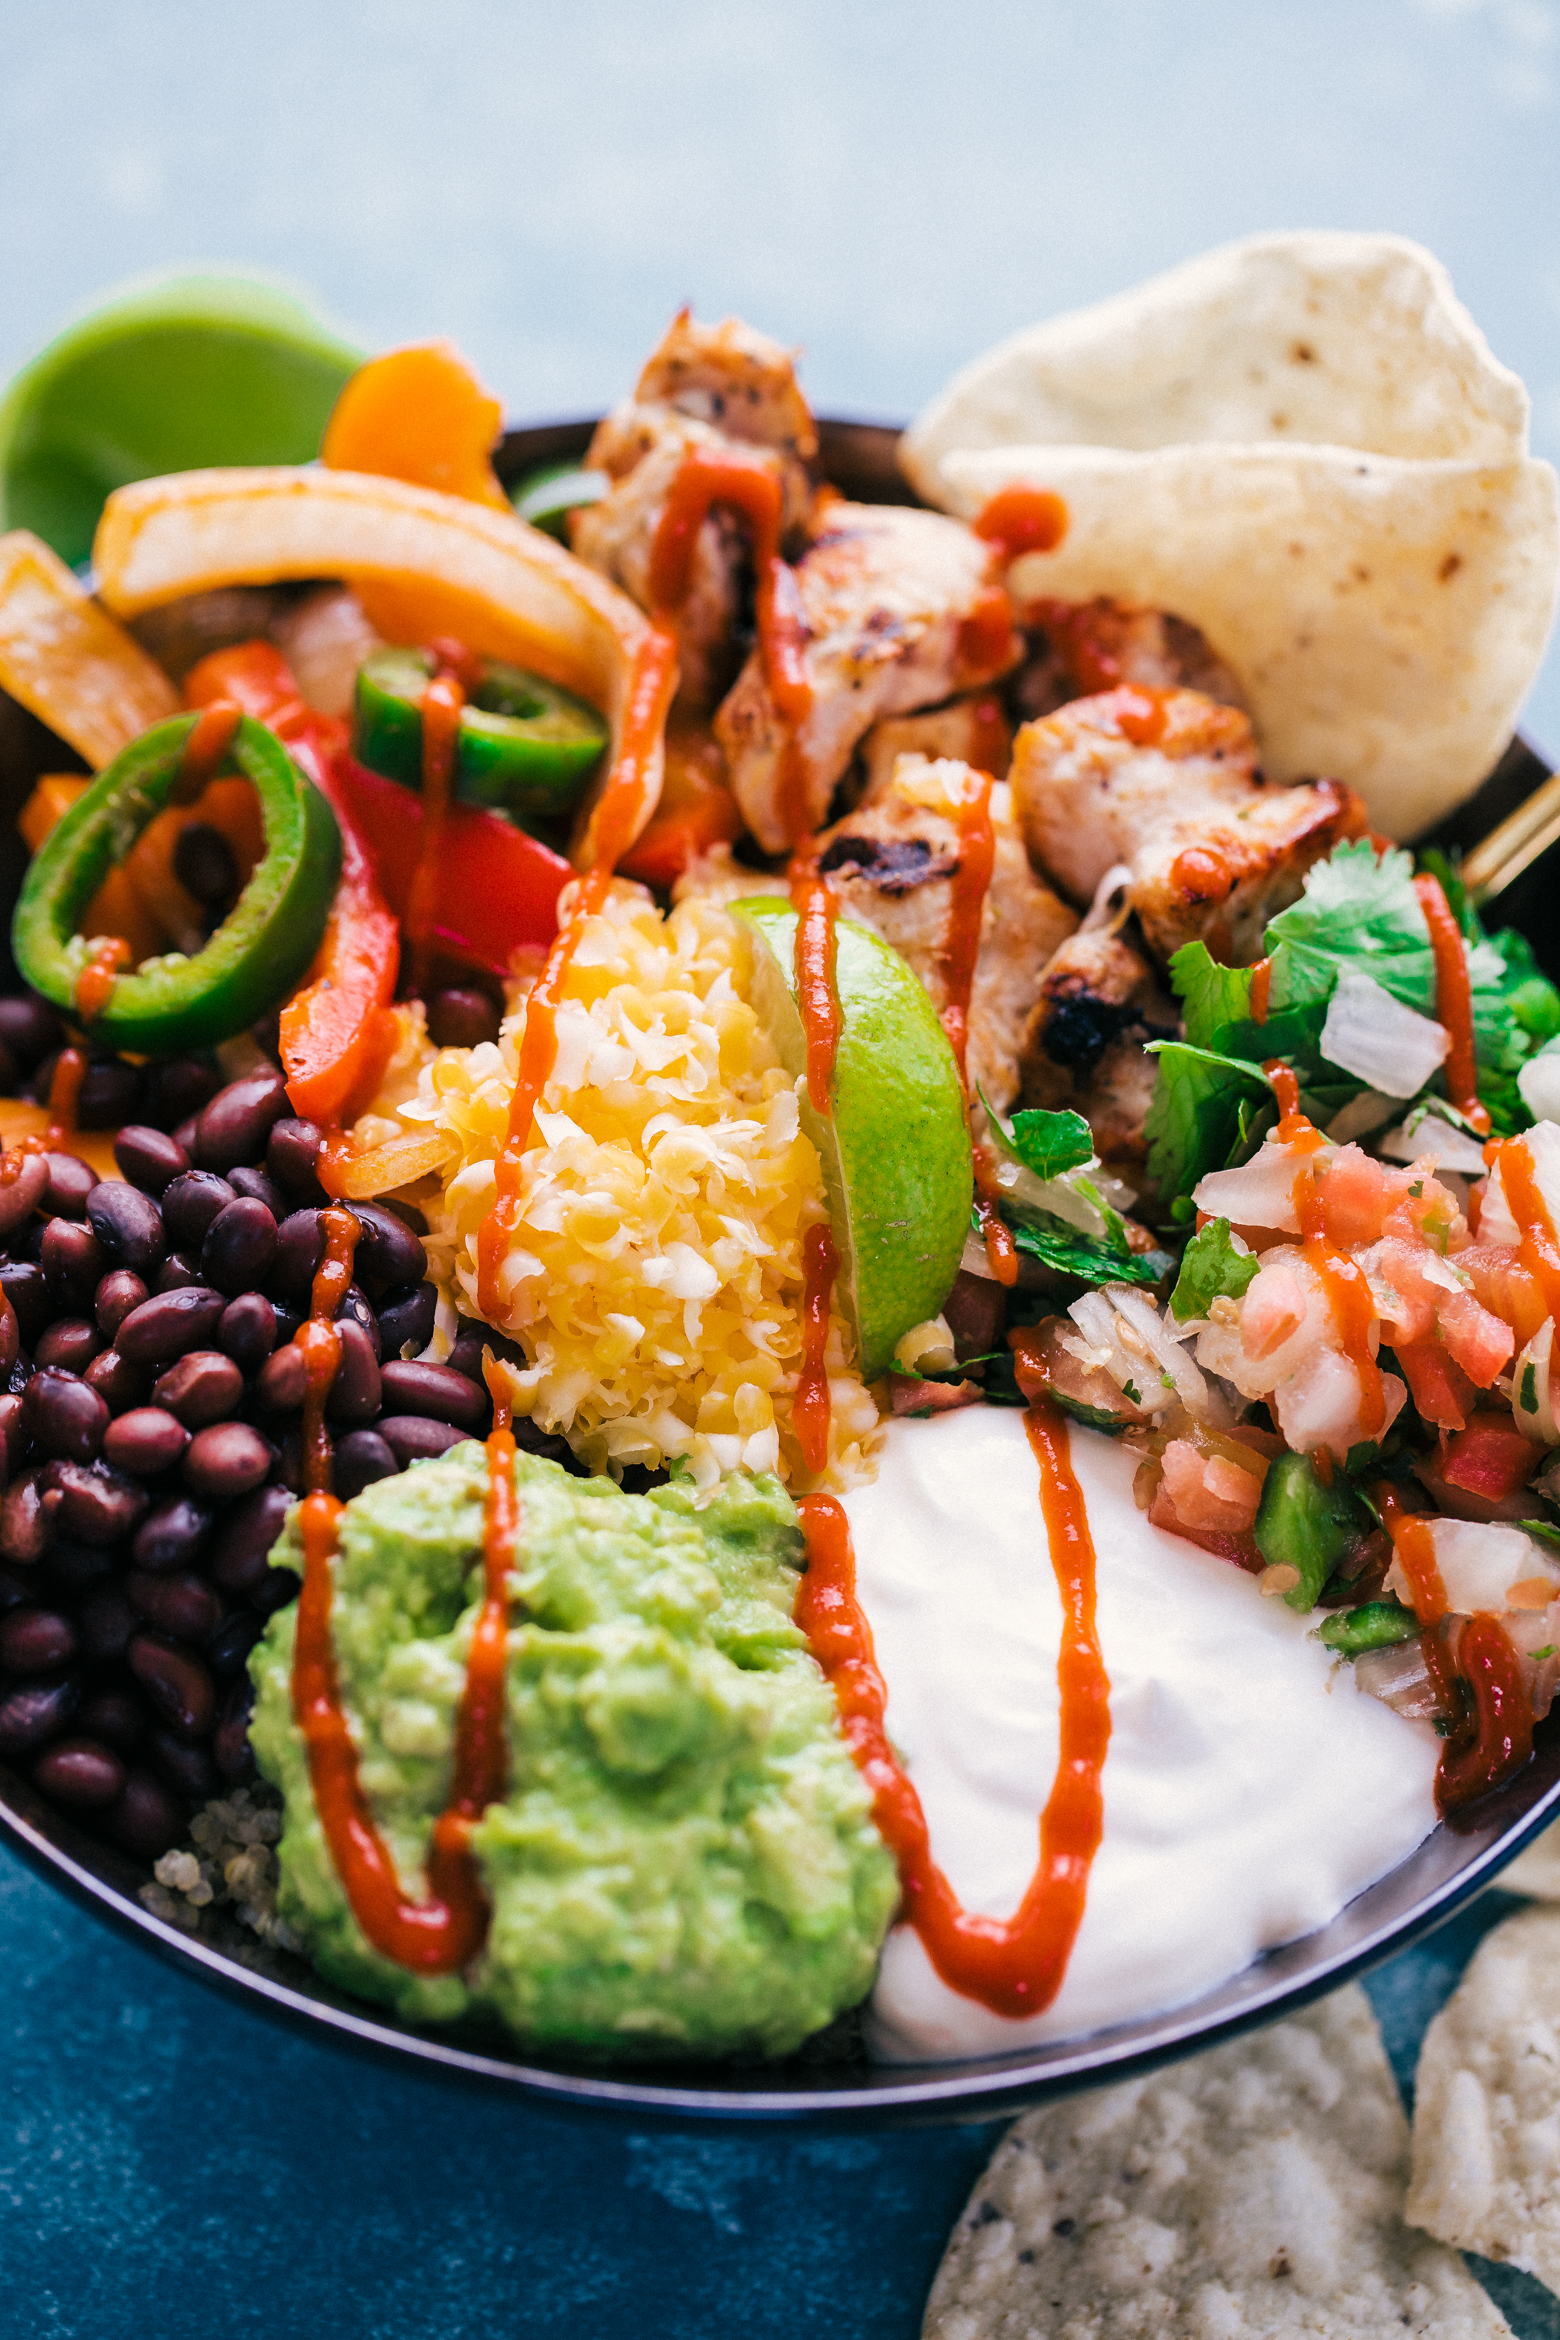 Burrito Bowl recipe for easy meal prep served with all the fixings, by The Food Cafe.